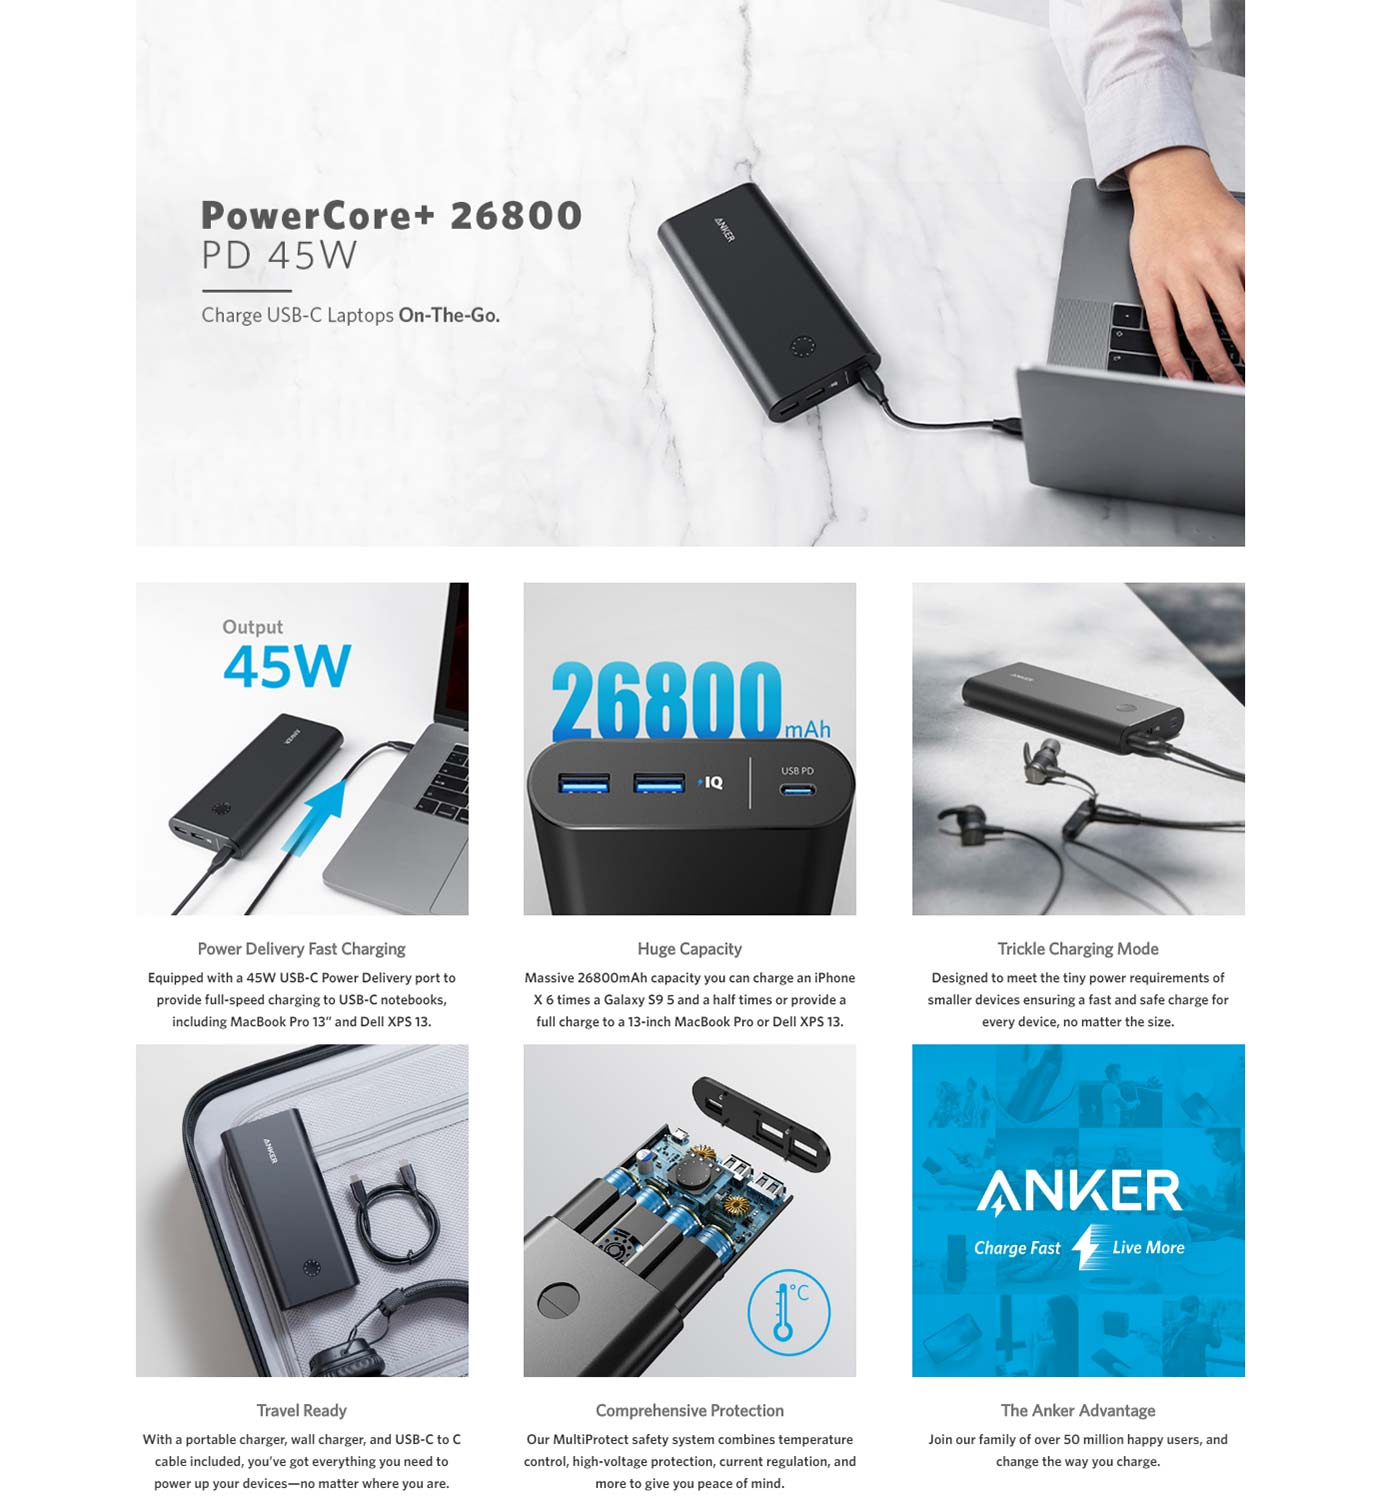 PowerCore+ 26800 PD